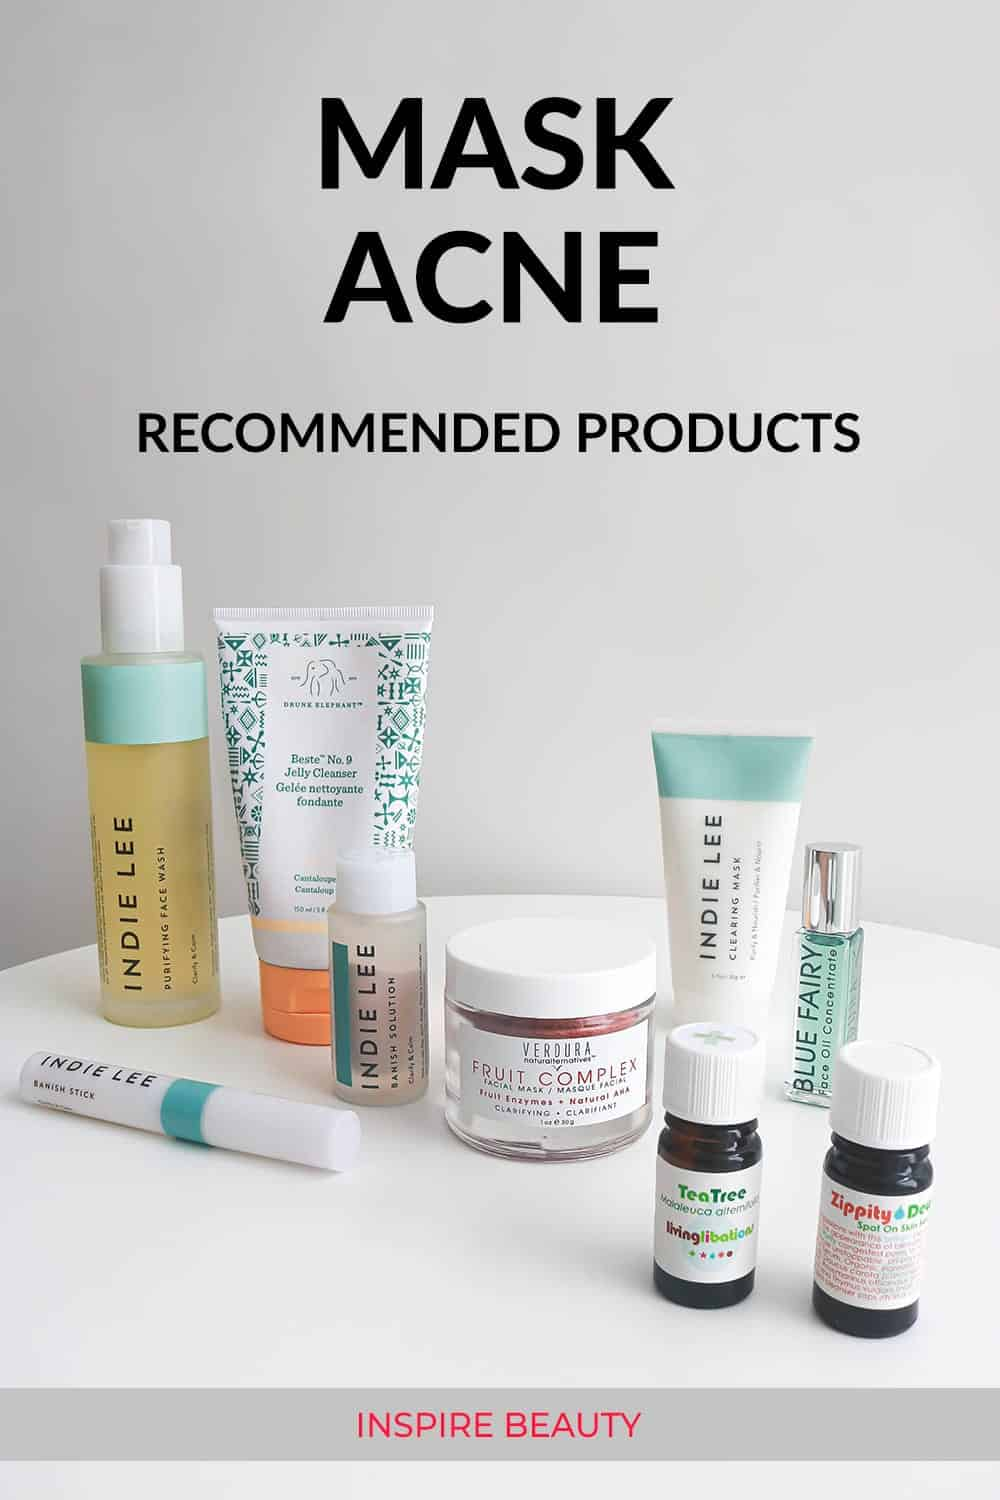 Recommended mild and clarifying skin care products for mask acne: Indie Lee Clearing Mask, Indie Lee Banish Solution, Verdura naturalternative Fruit Complex and Blue Fairy, Tea Tree Oil